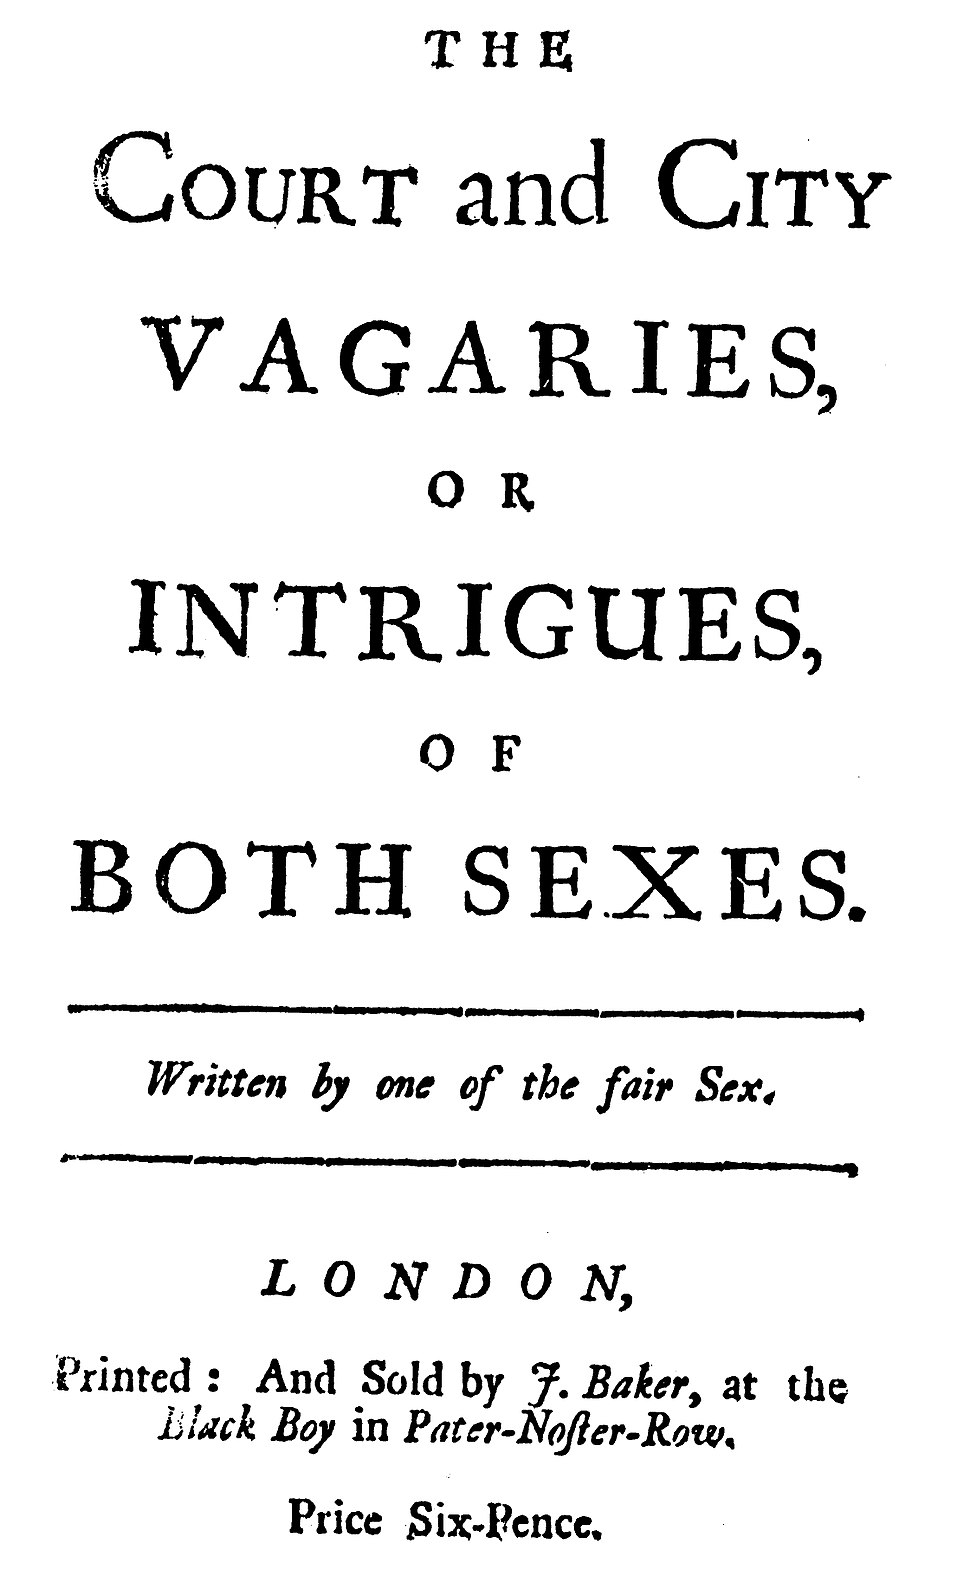 1711 The Court and City Vagaries